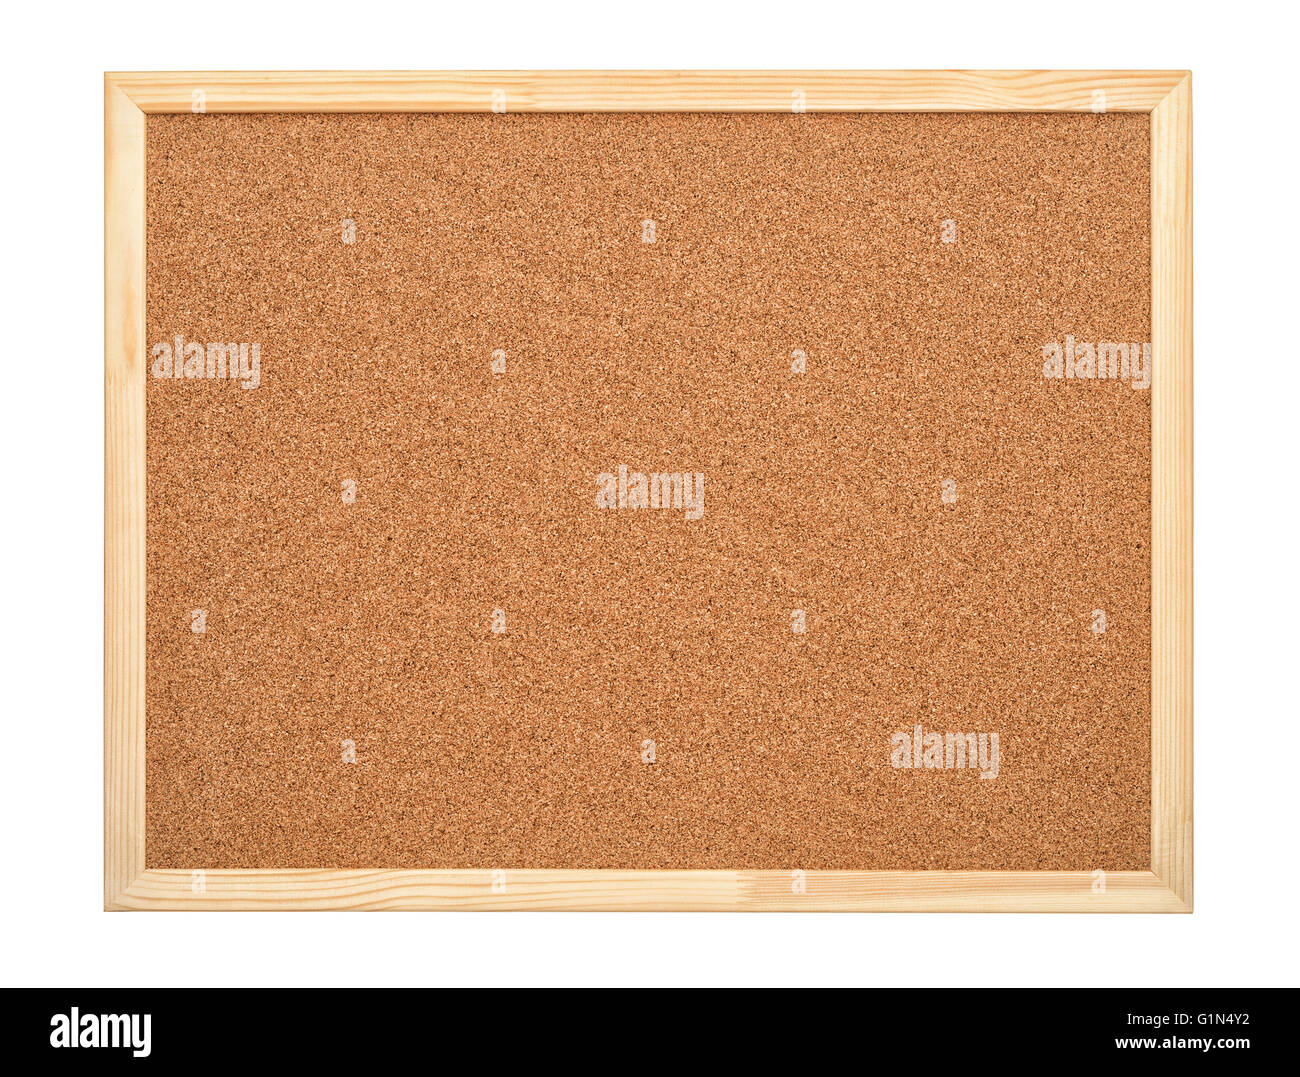 Blank cork board with wood frame isolated on white - Stock Image